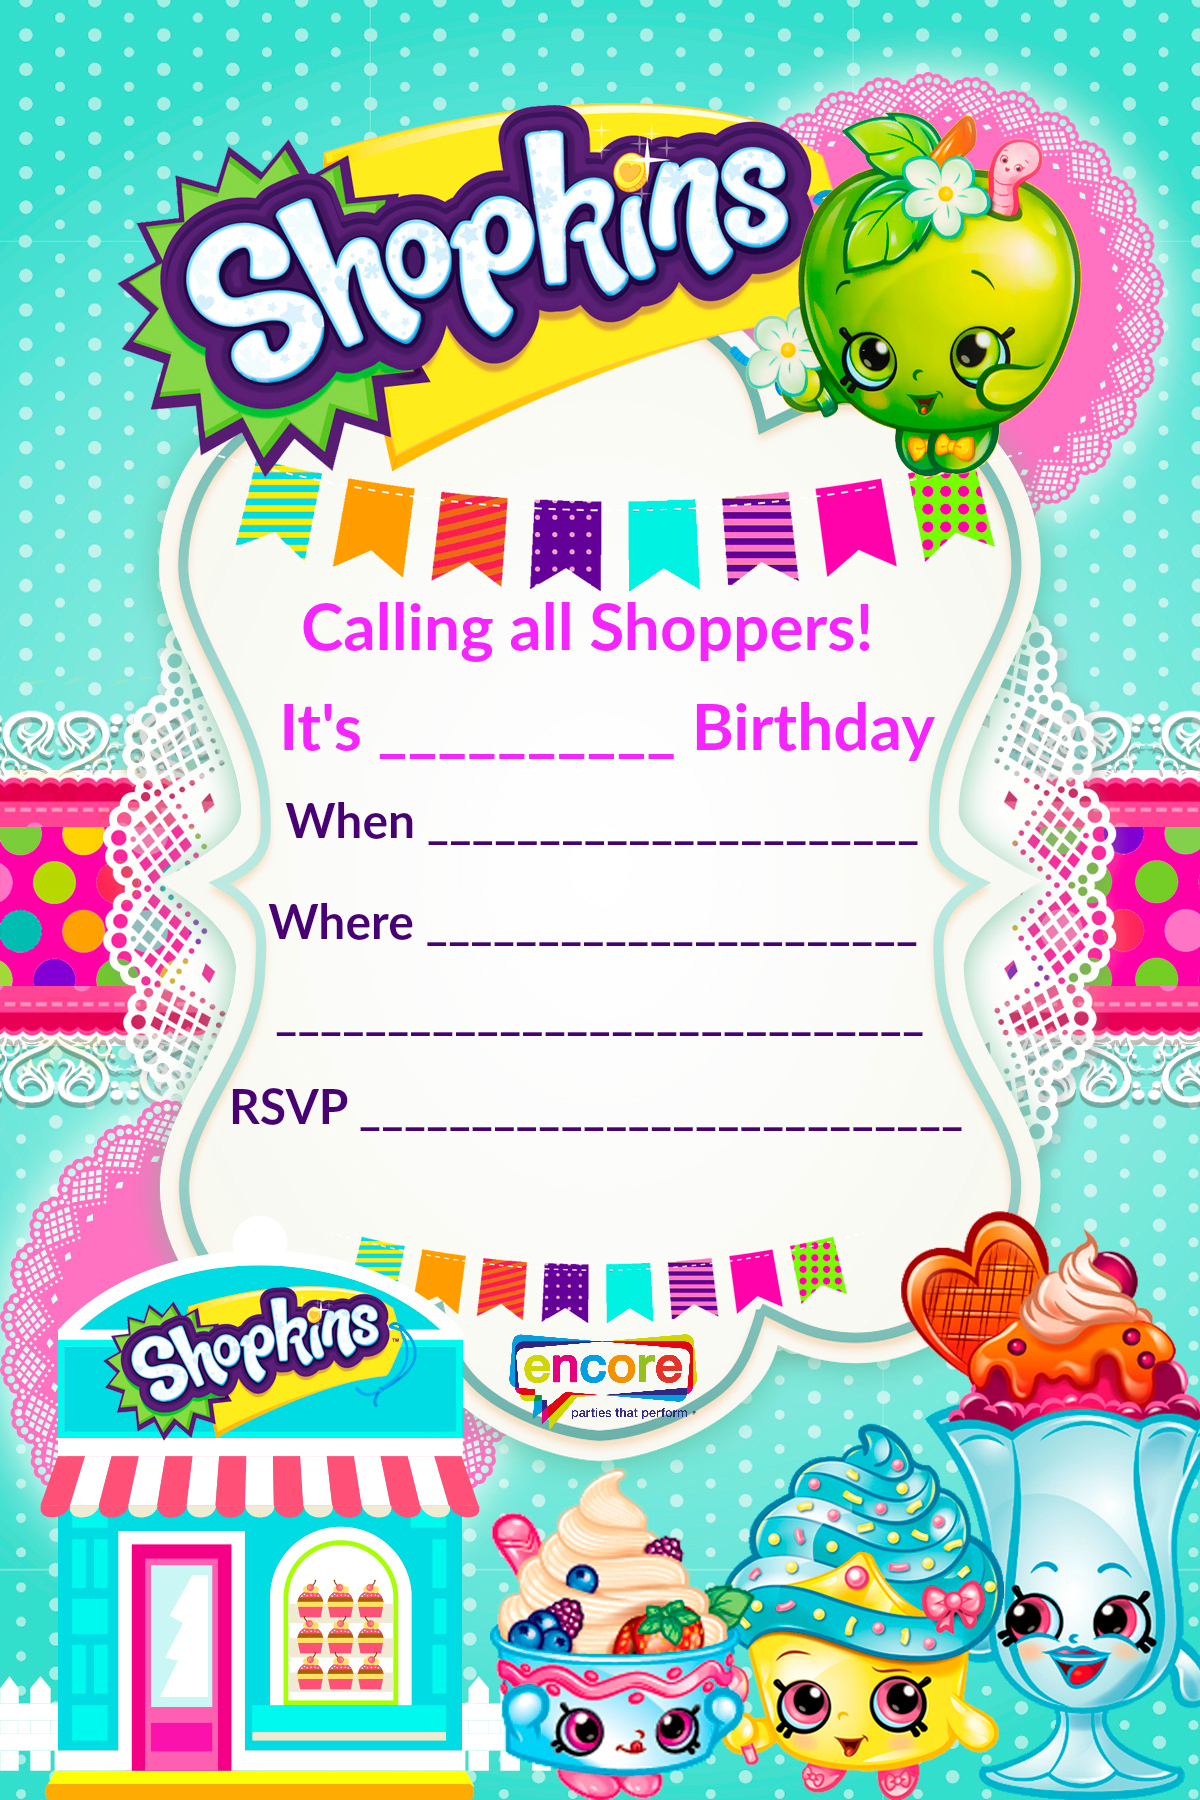 Make Your Own Invitation Free as adorable invitation layout